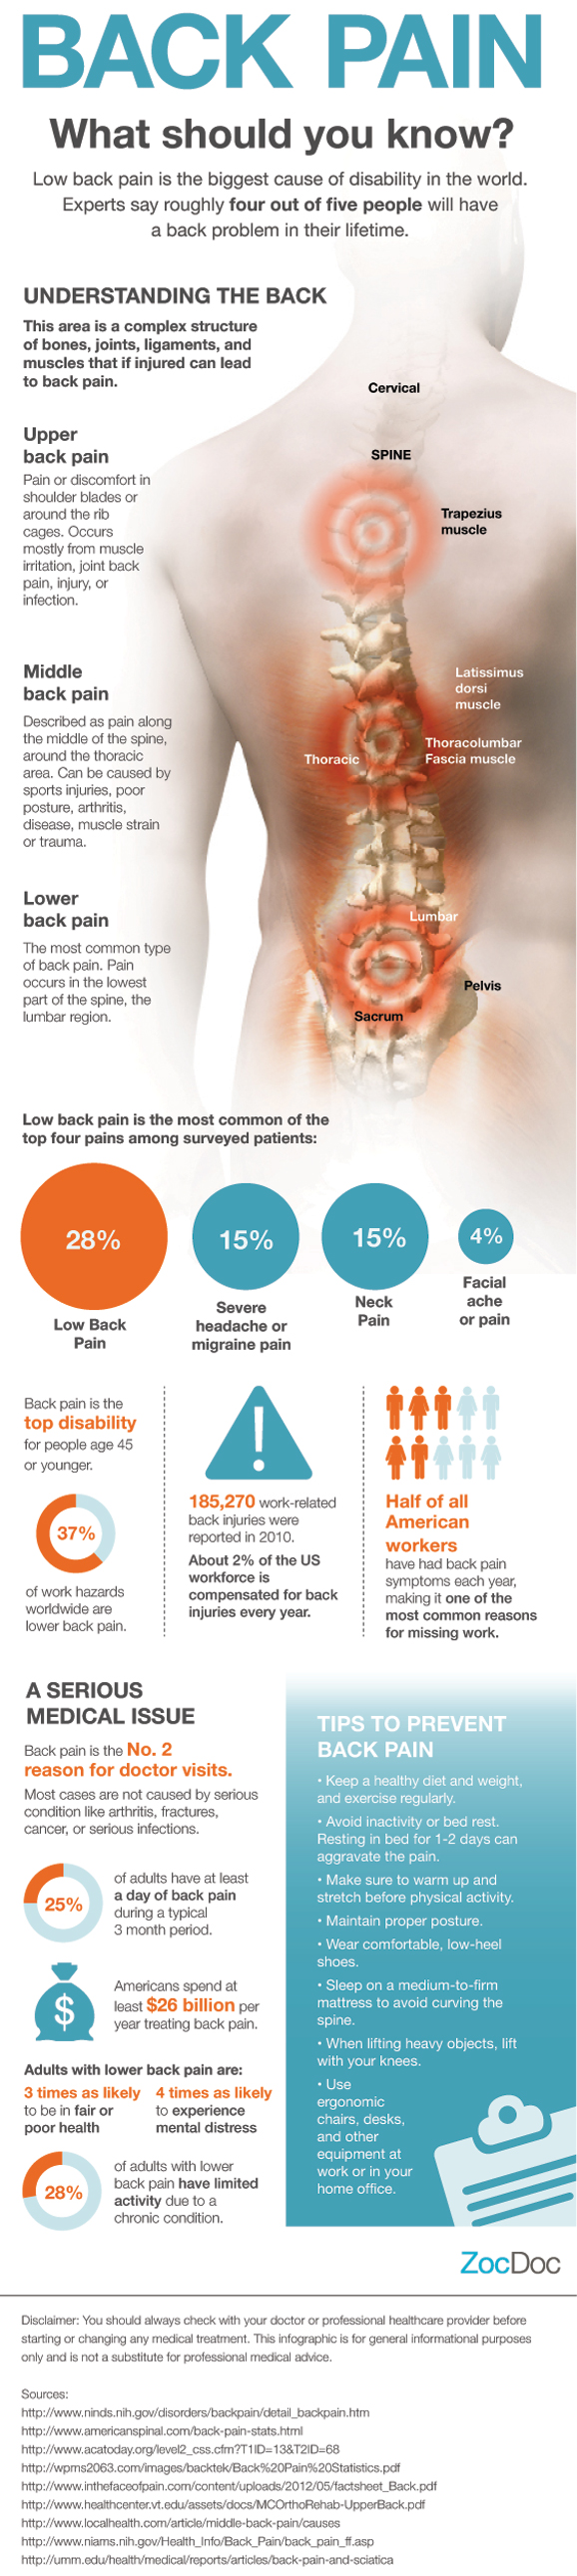 Back Pain: What You Should Know by ZocDoc